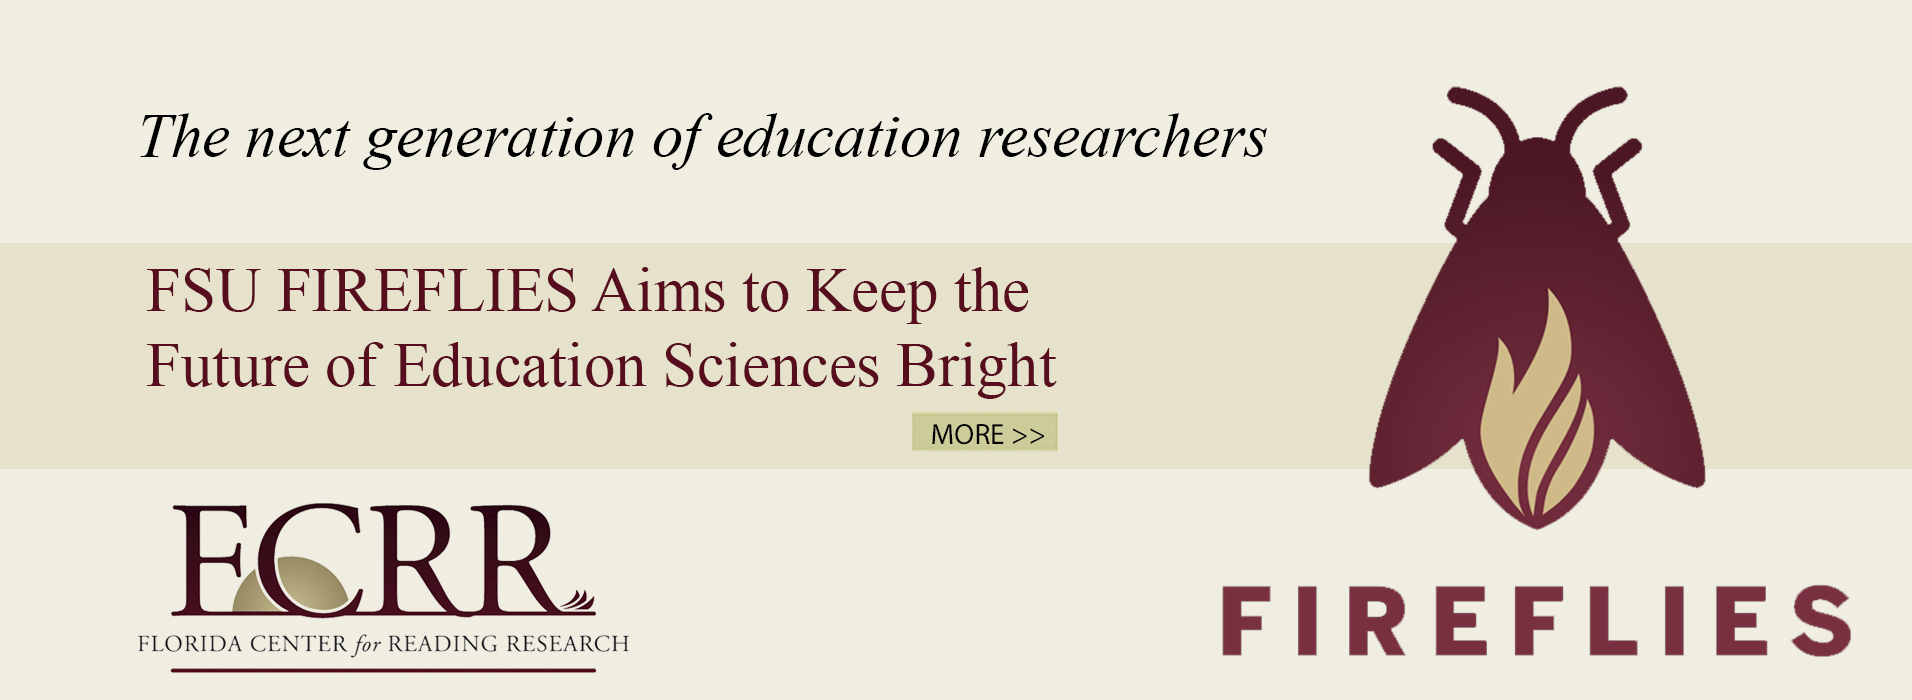 FSU FIREFLIES Aims to Keep the Future of Education Sciences Bright